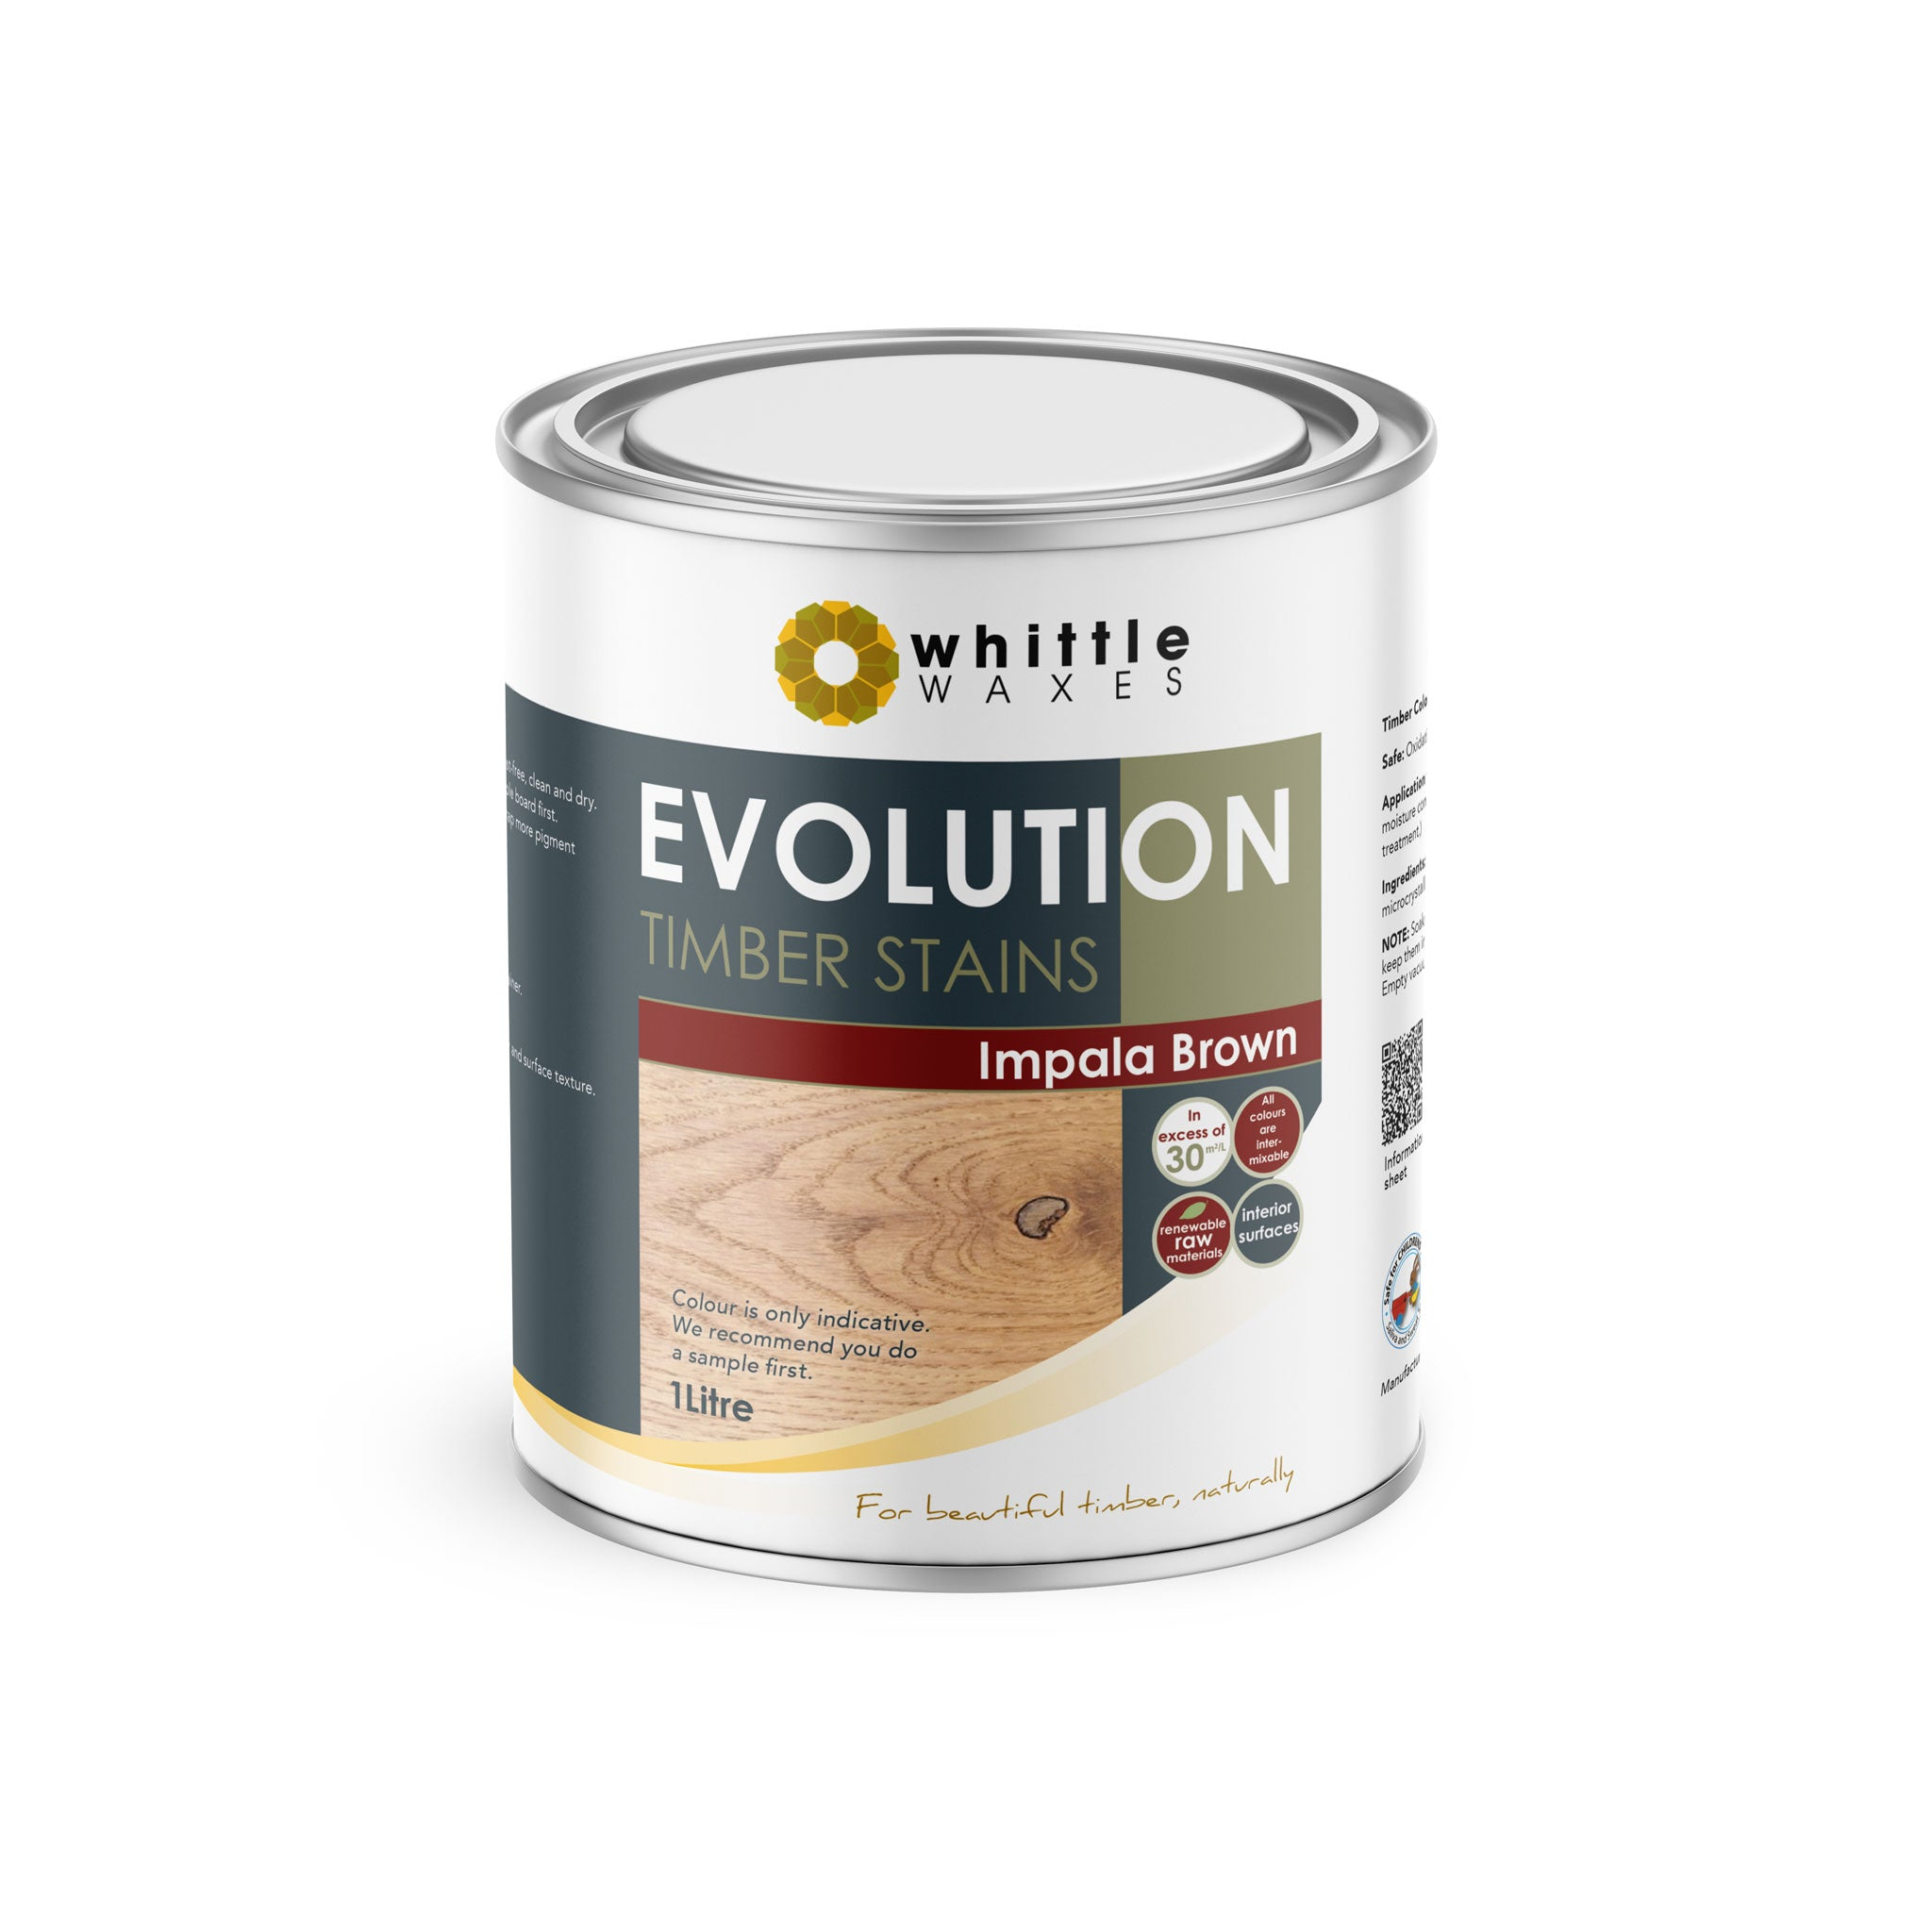 Whittle Waxes Evolution Colours (Impala Brown) - quality timber stain - 1 Litre